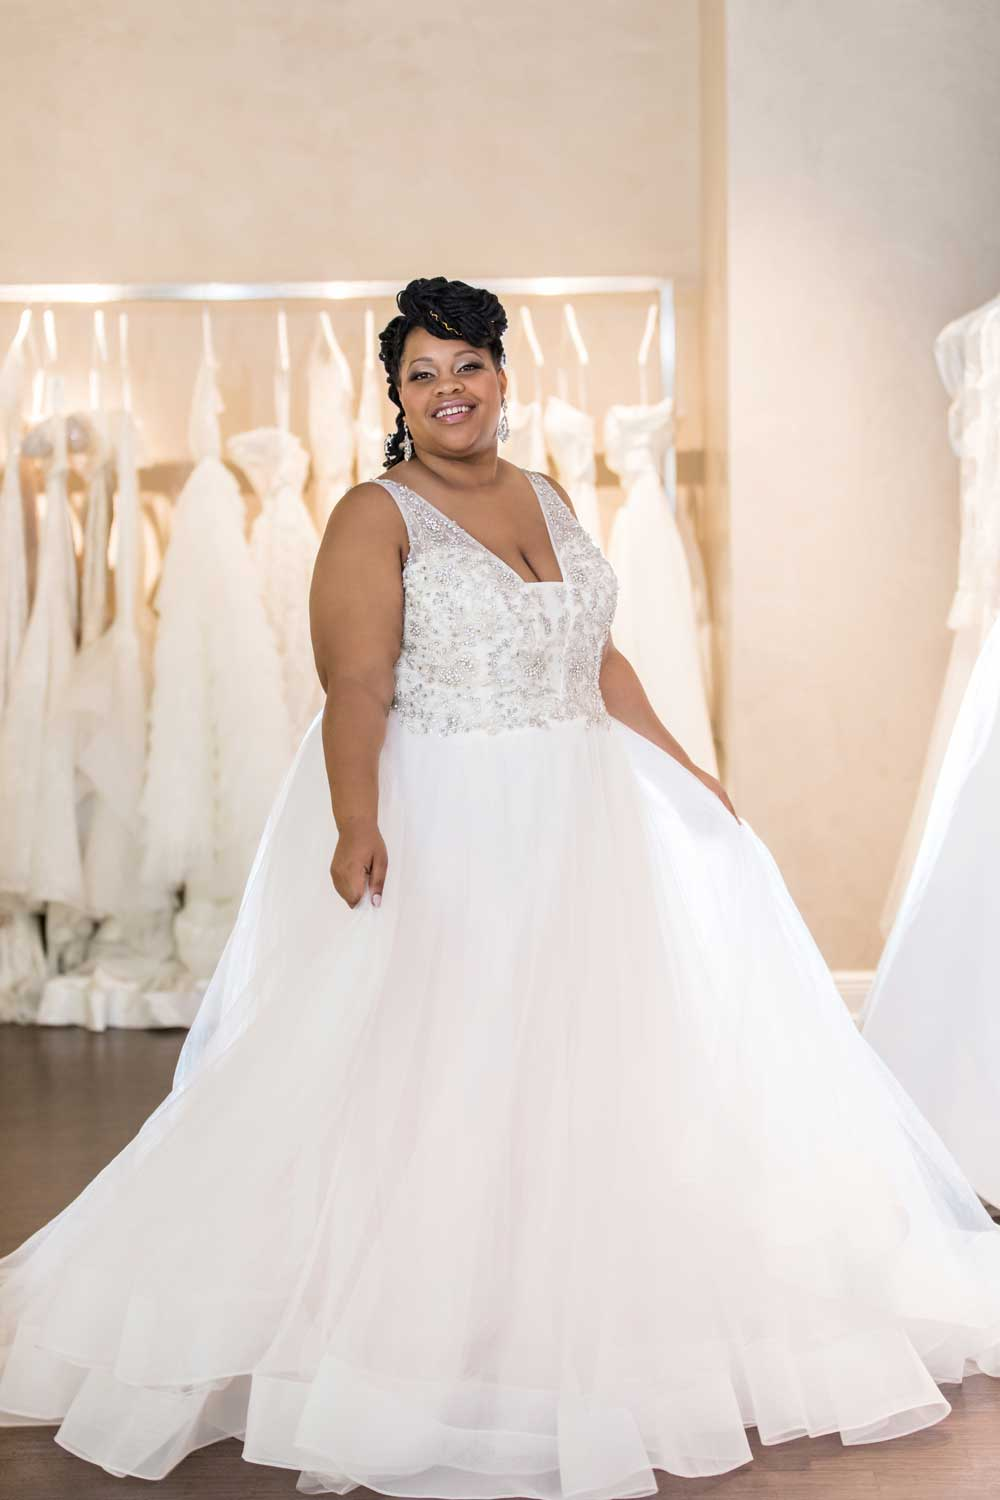 plus-size bride having the best wedding dress shopping experience